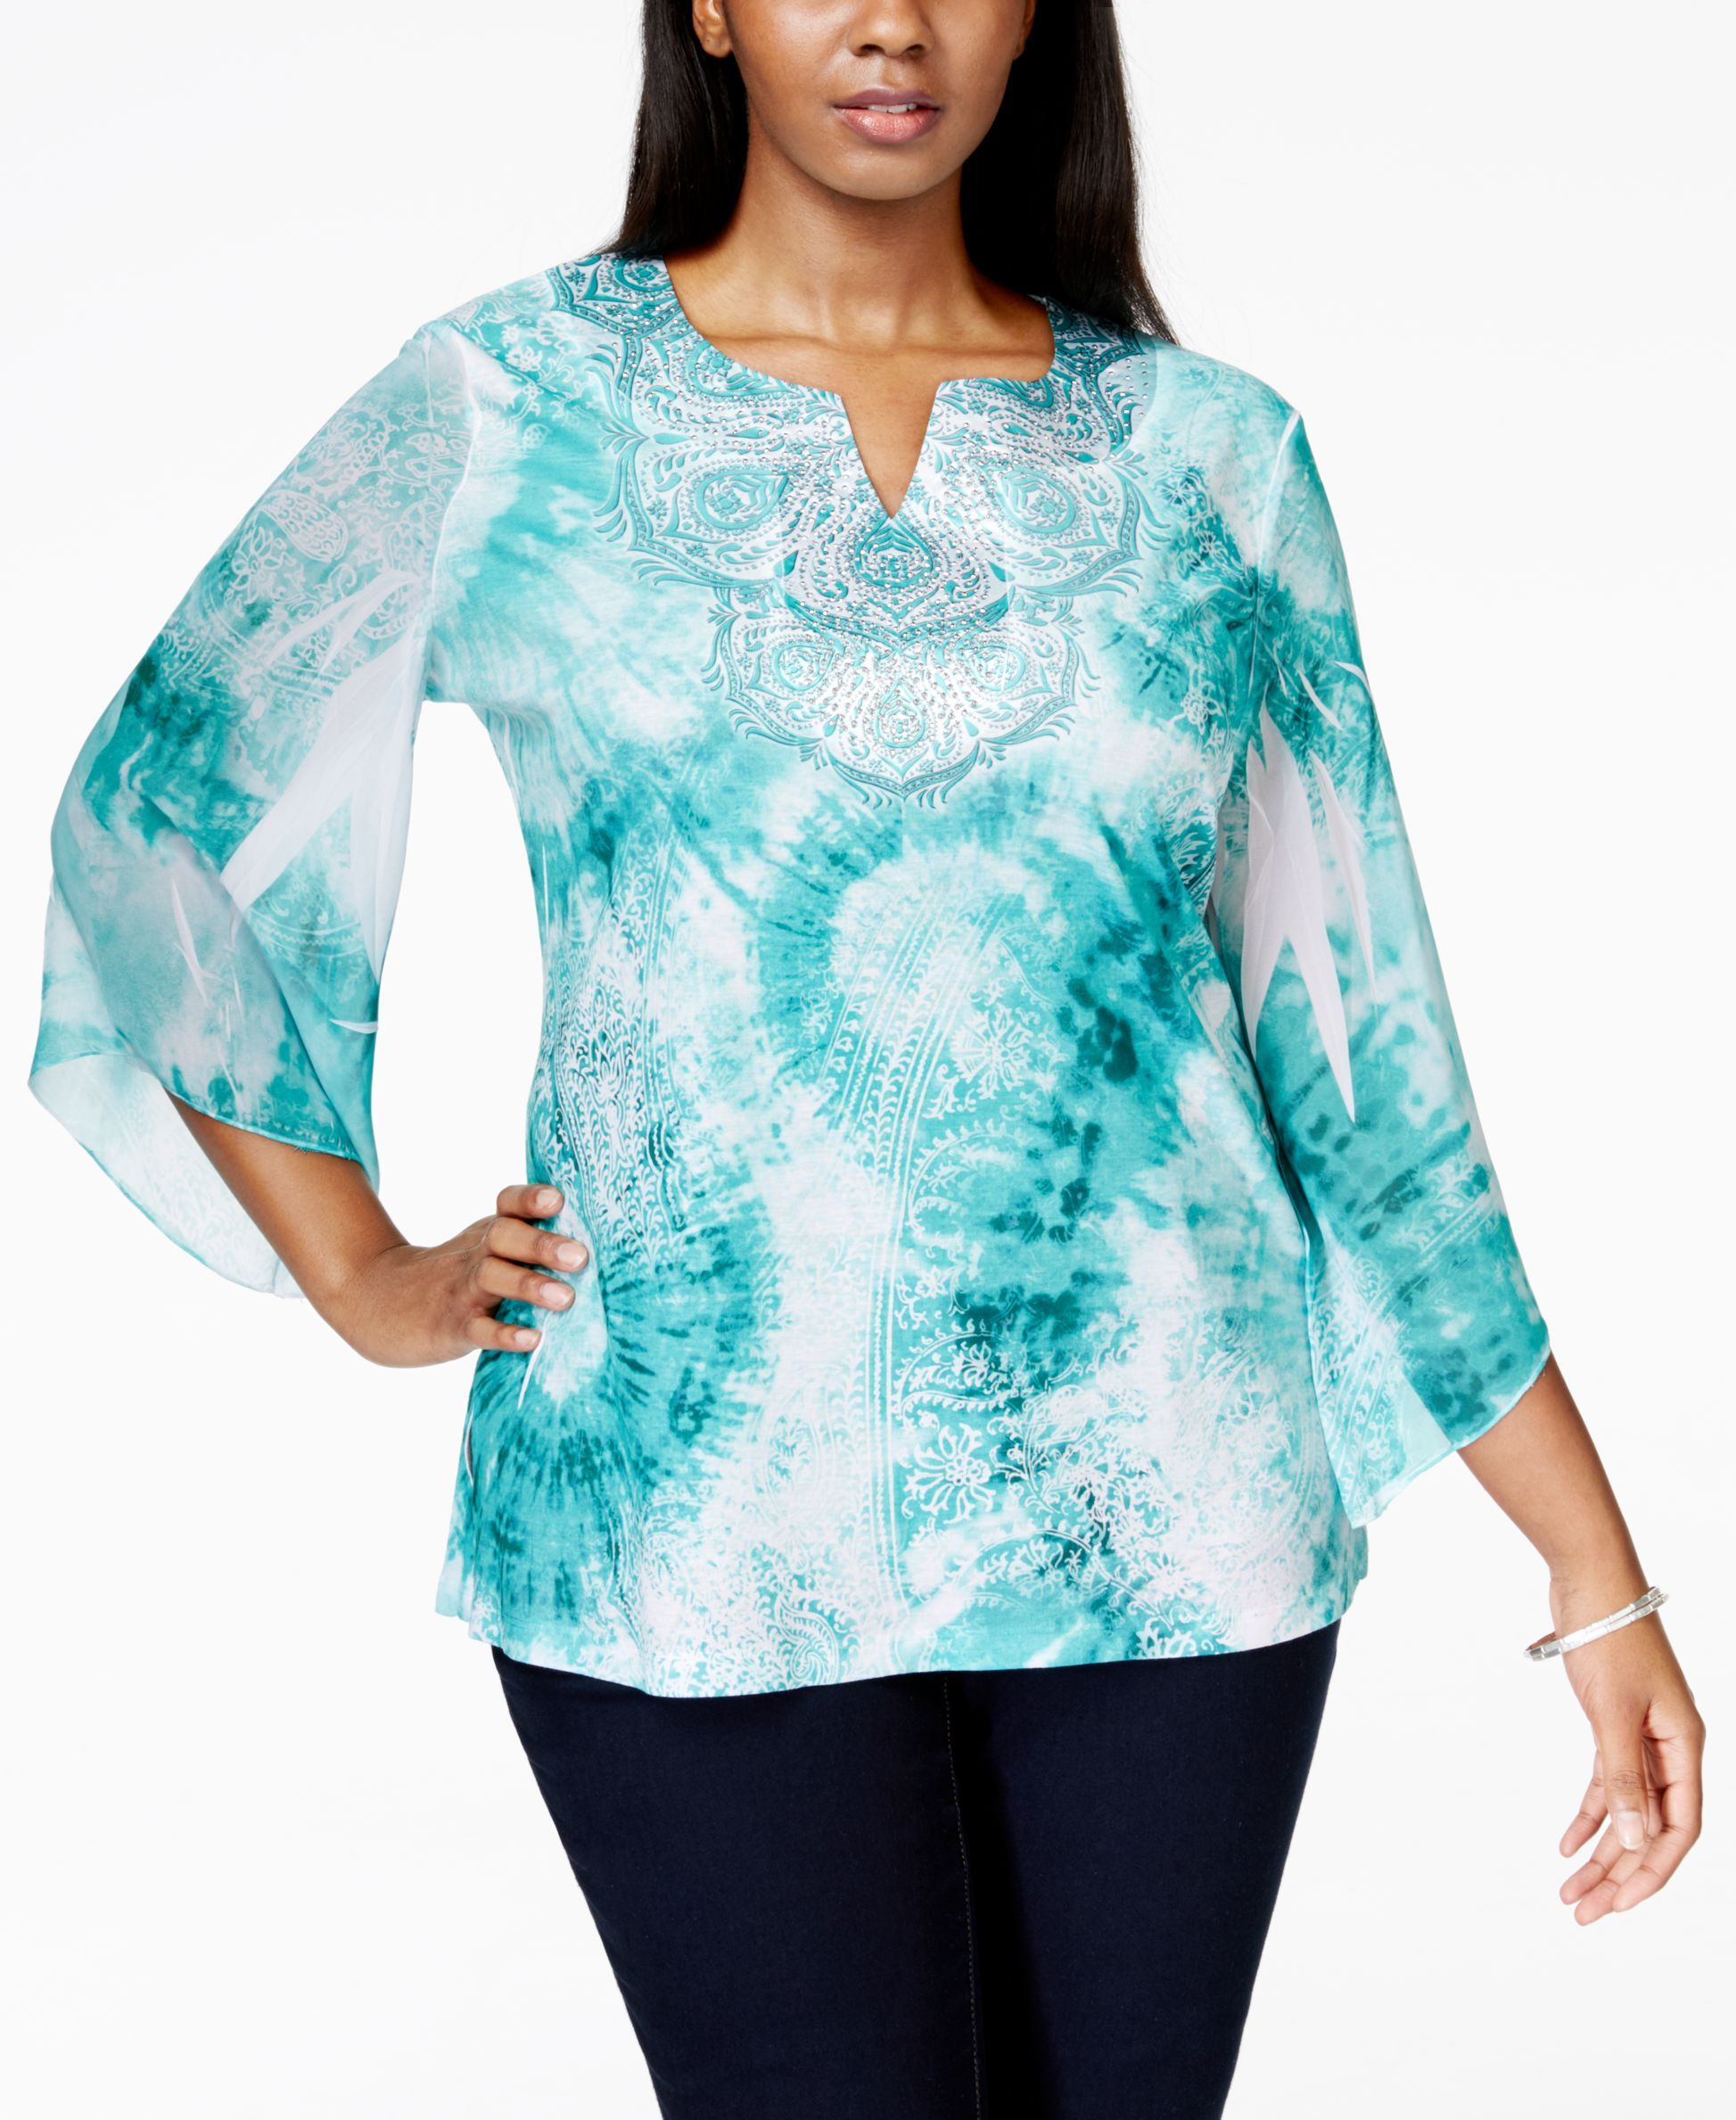 Jm Collection Plus Size Printed Batwing-Sleeve Blouse, Only at Macy's